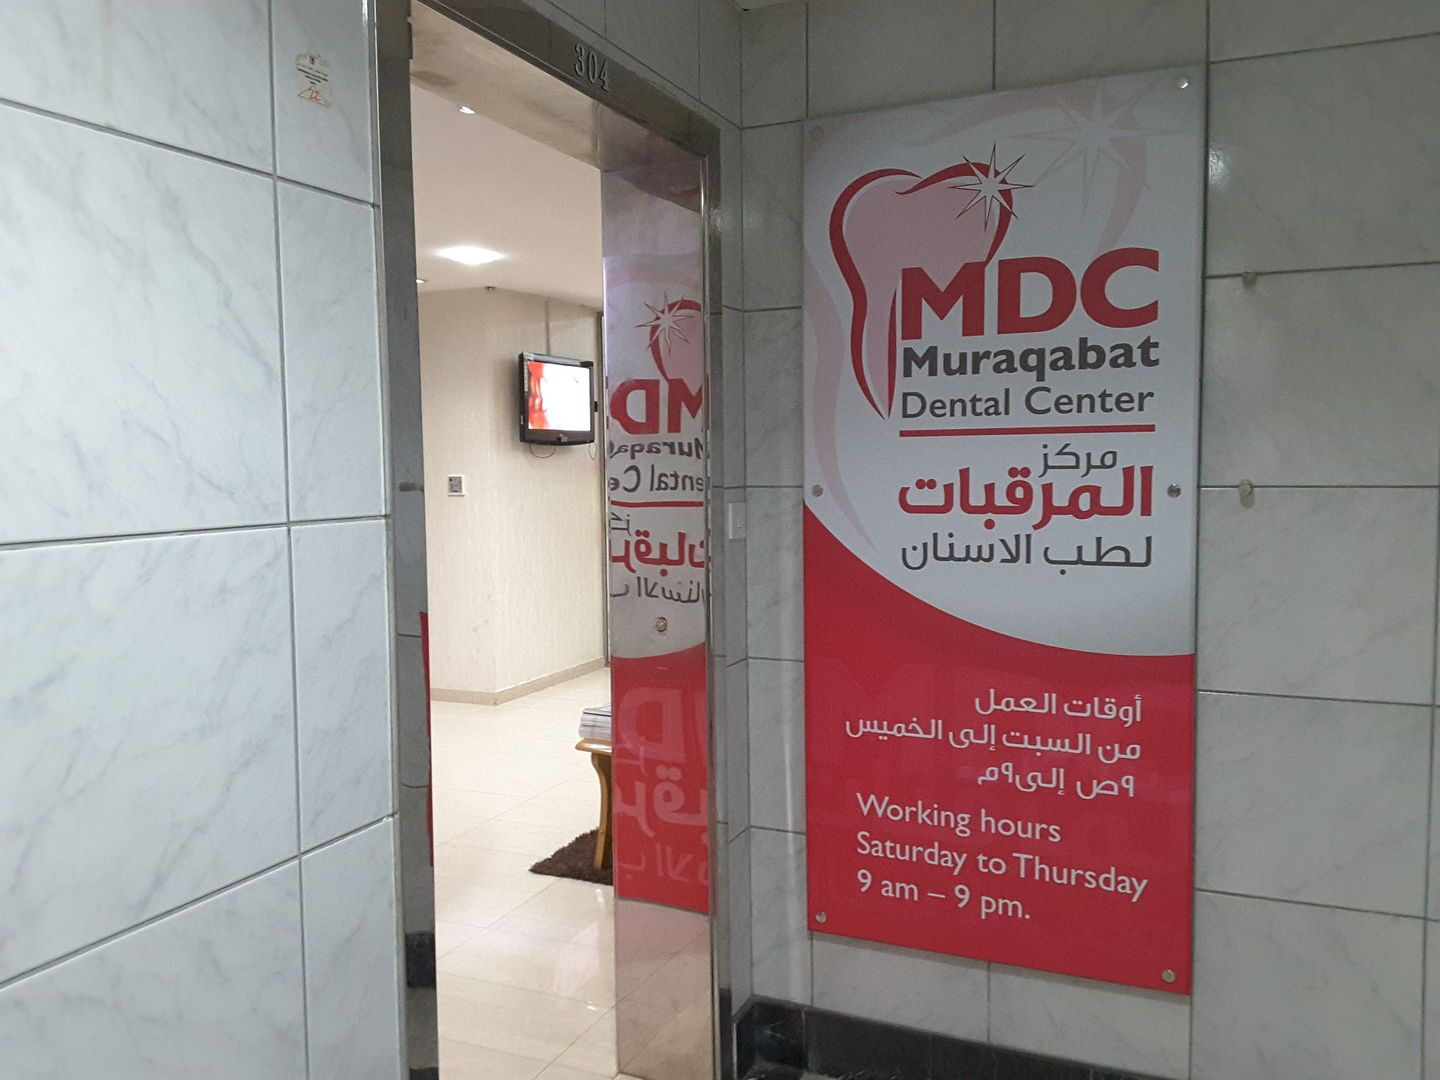 Muraqabat Dental Center 2